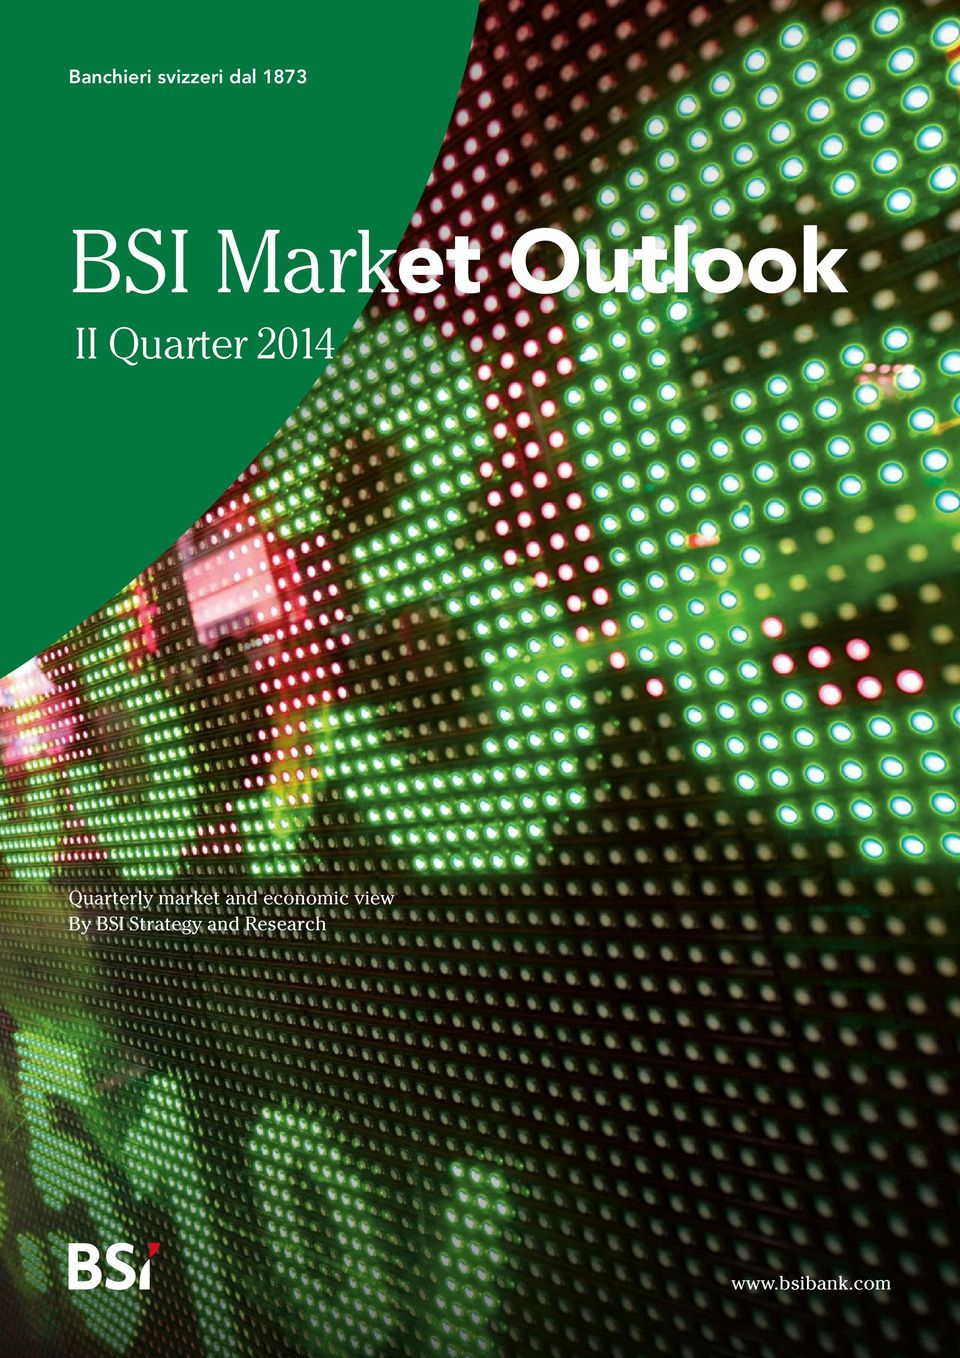 Quarterly market and economic view